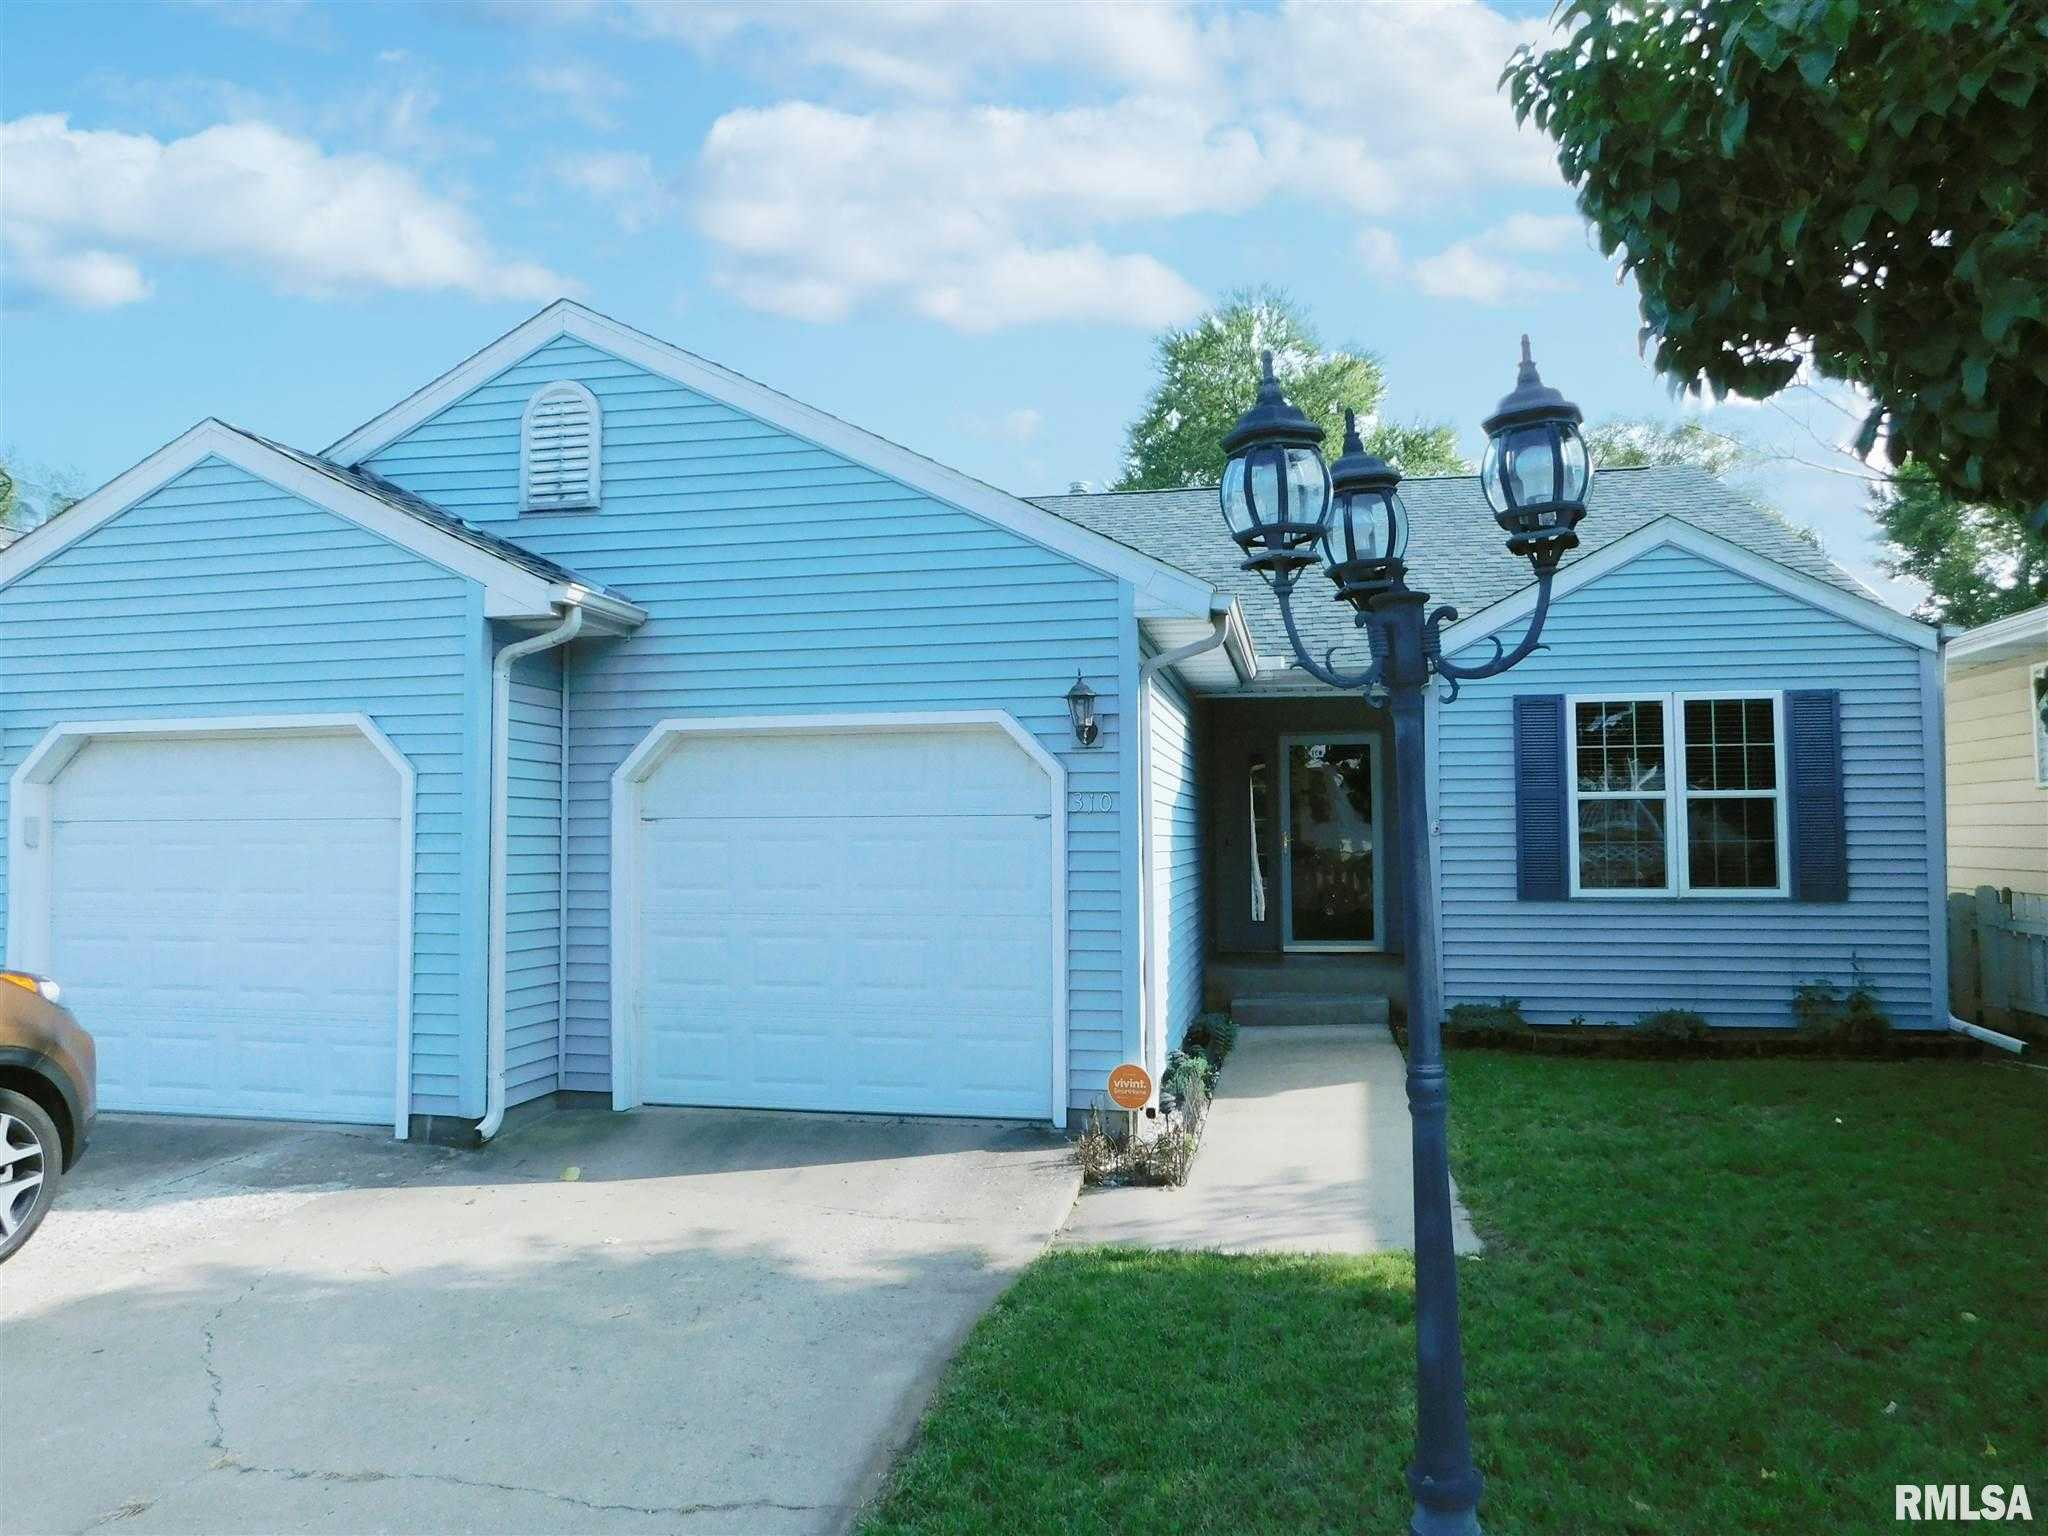 $89,900 - 3Br/2Ba -  for Sale in Jackson Park, Peoria